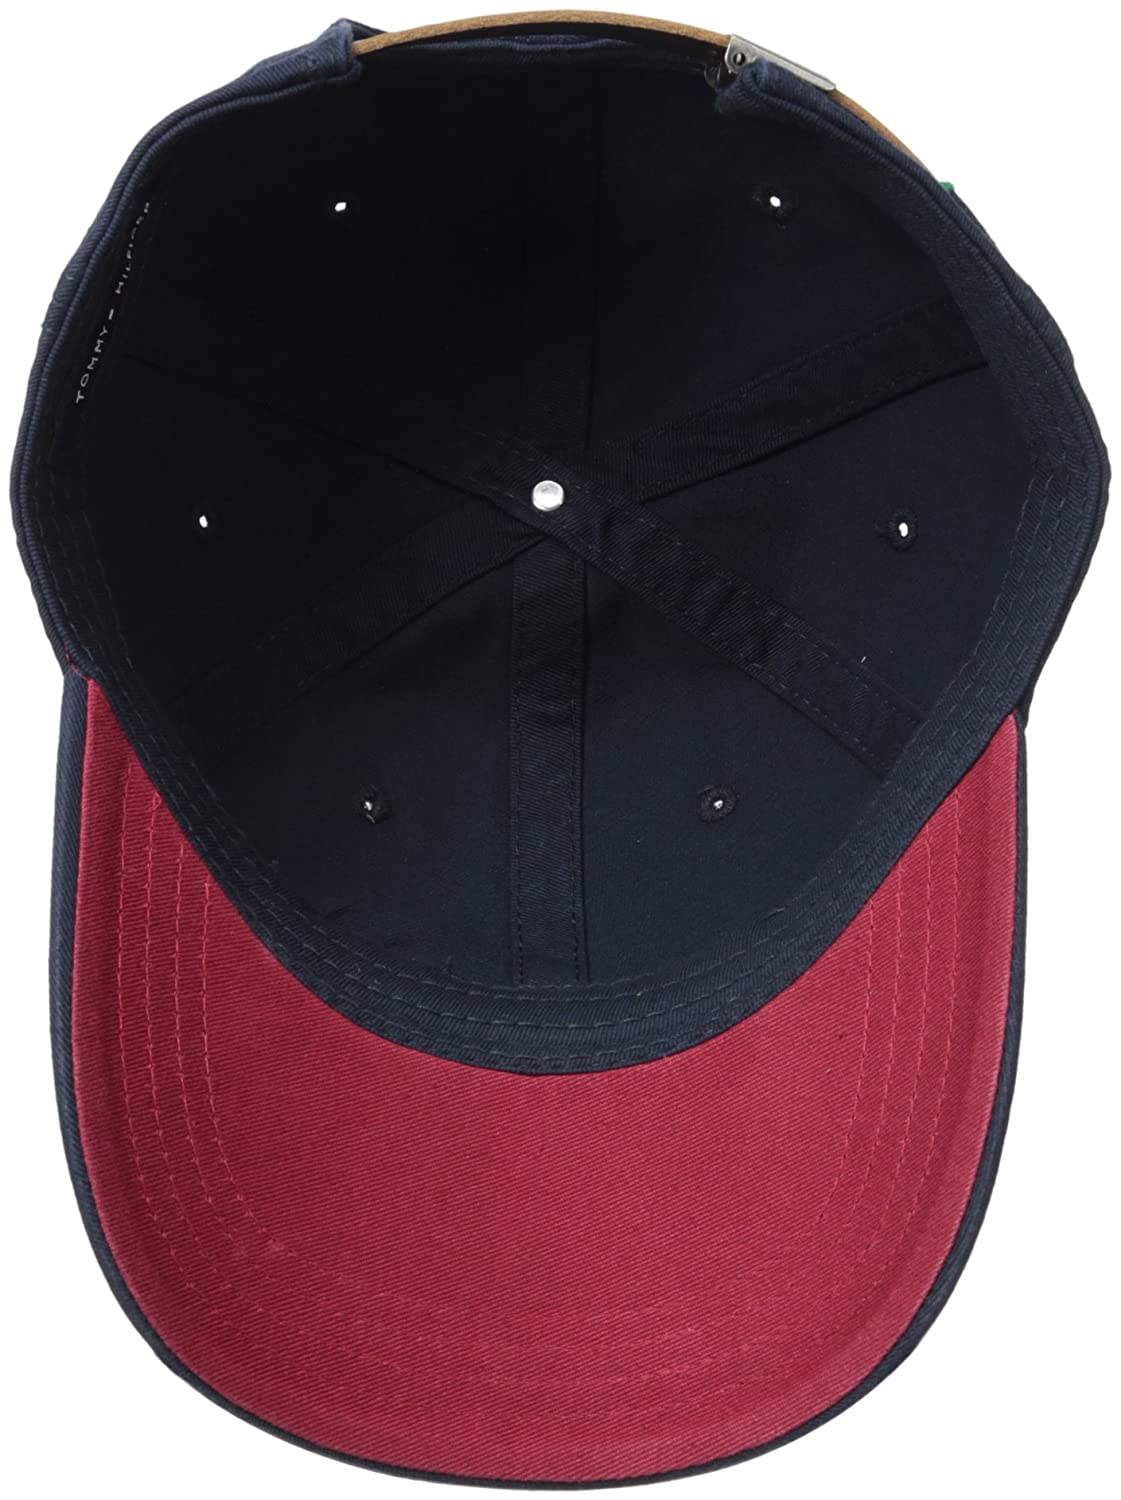 04fab9be642a54 Tommy Hilfiger Men's Logo Dad Baseball Cap, Charcoal, O/S: Amazon.ca:  Clothing & Accessories